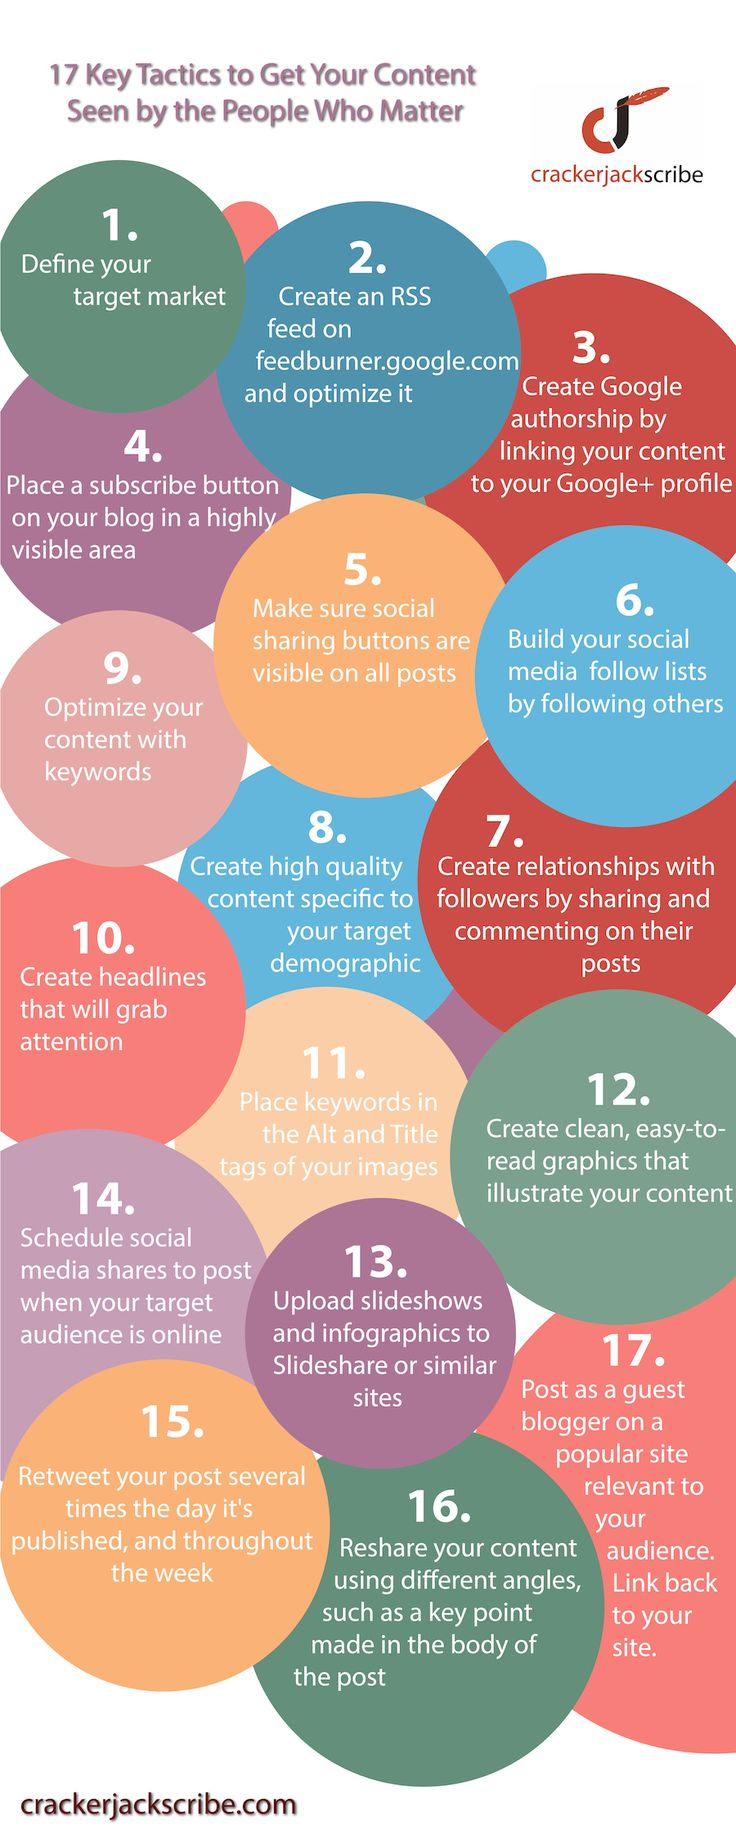 17 Key Tactics to get your content seen and generate leads #Infographic